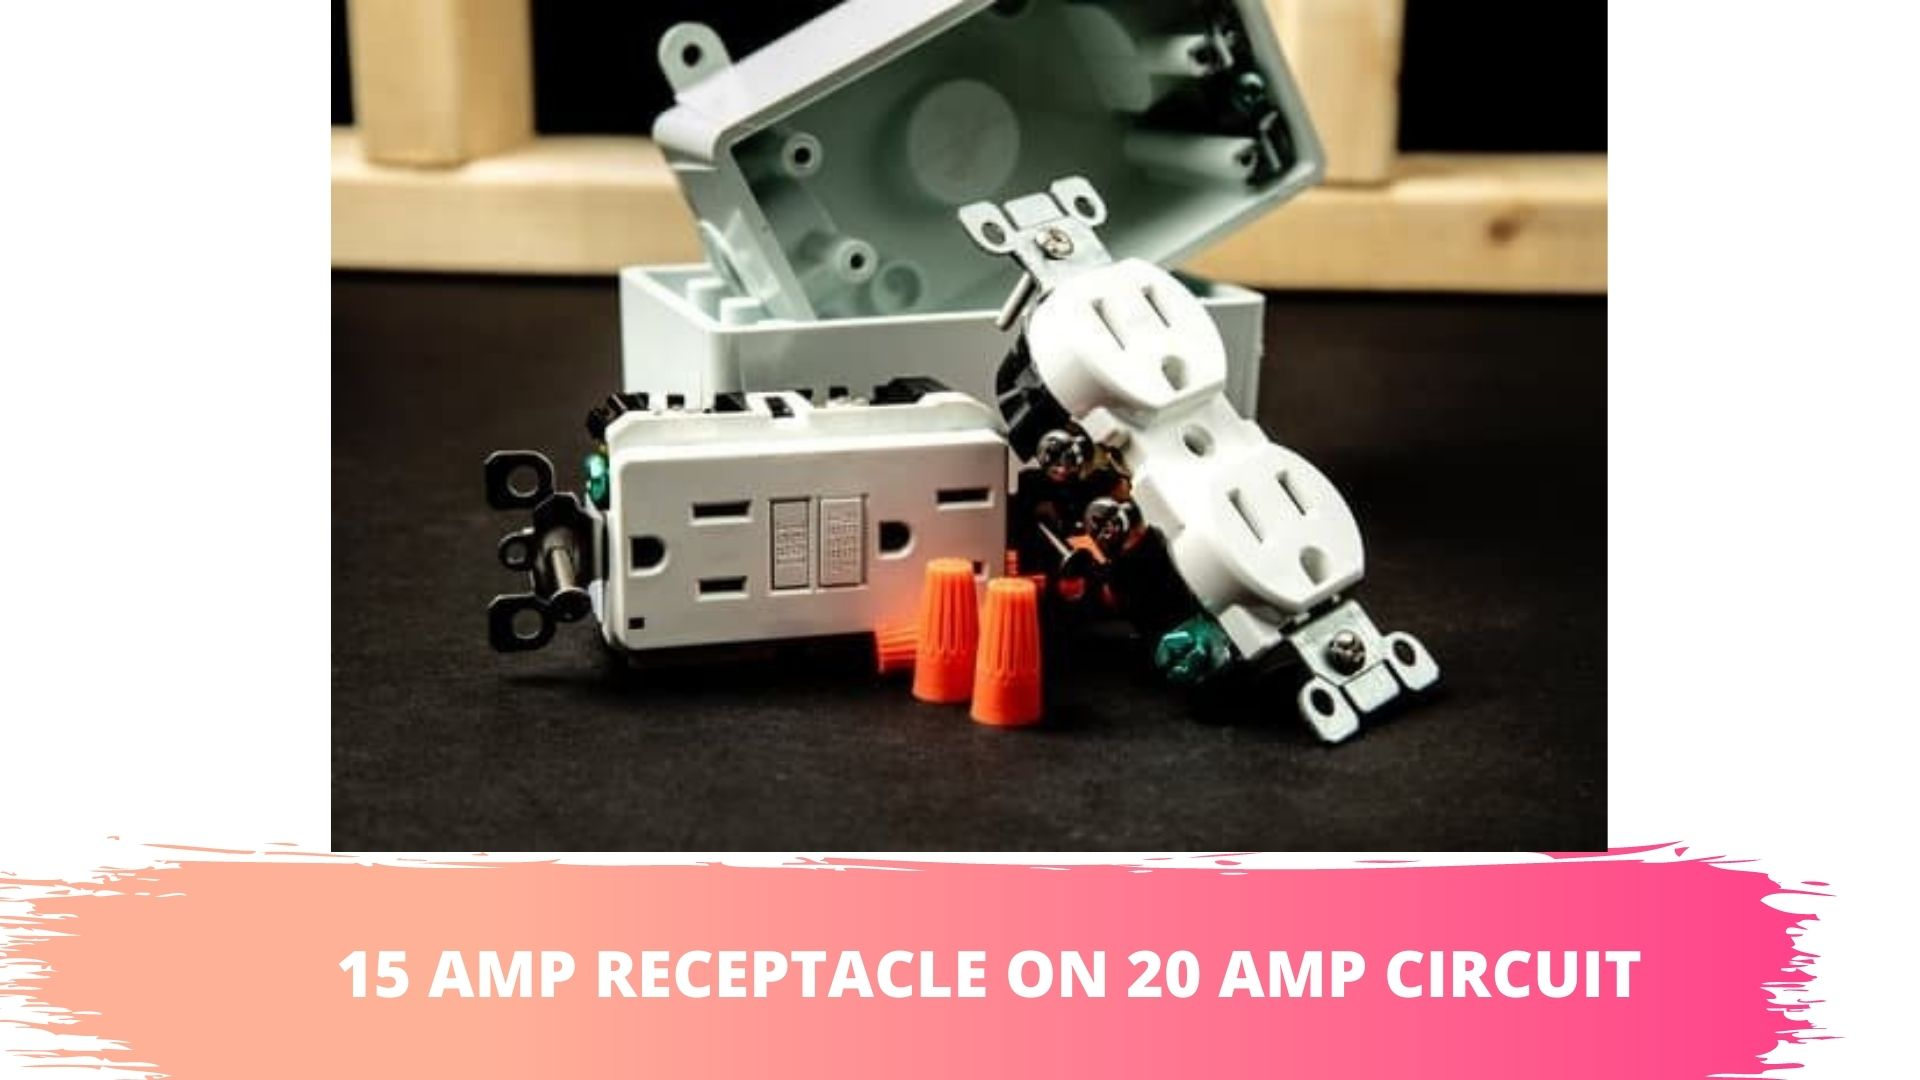 can you put a 15 amp receptacle on a 20 amp circuit